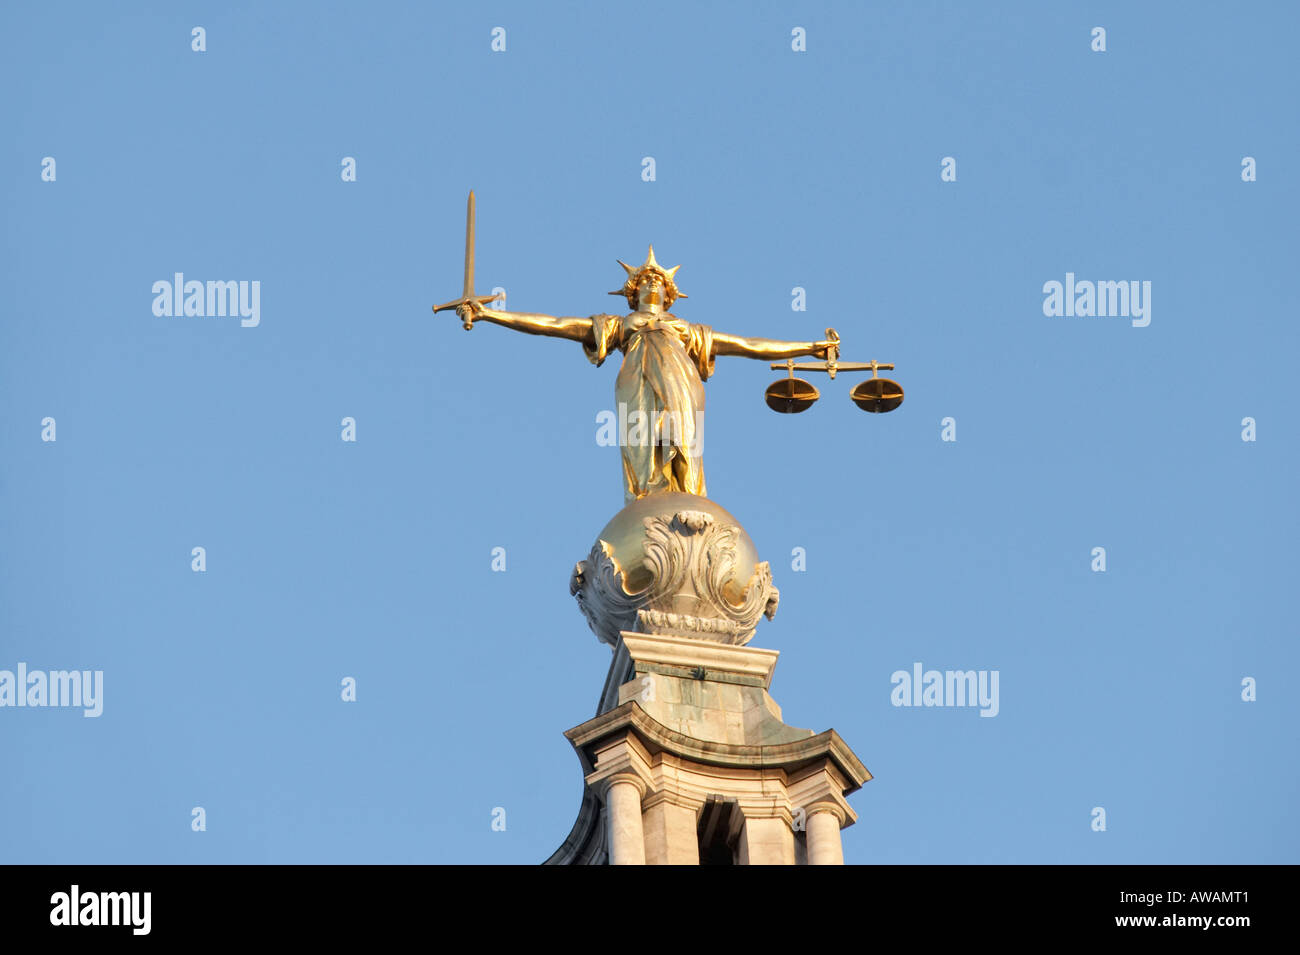 Scales of Justice statue at The Old Bailey in London UK - Stock Image